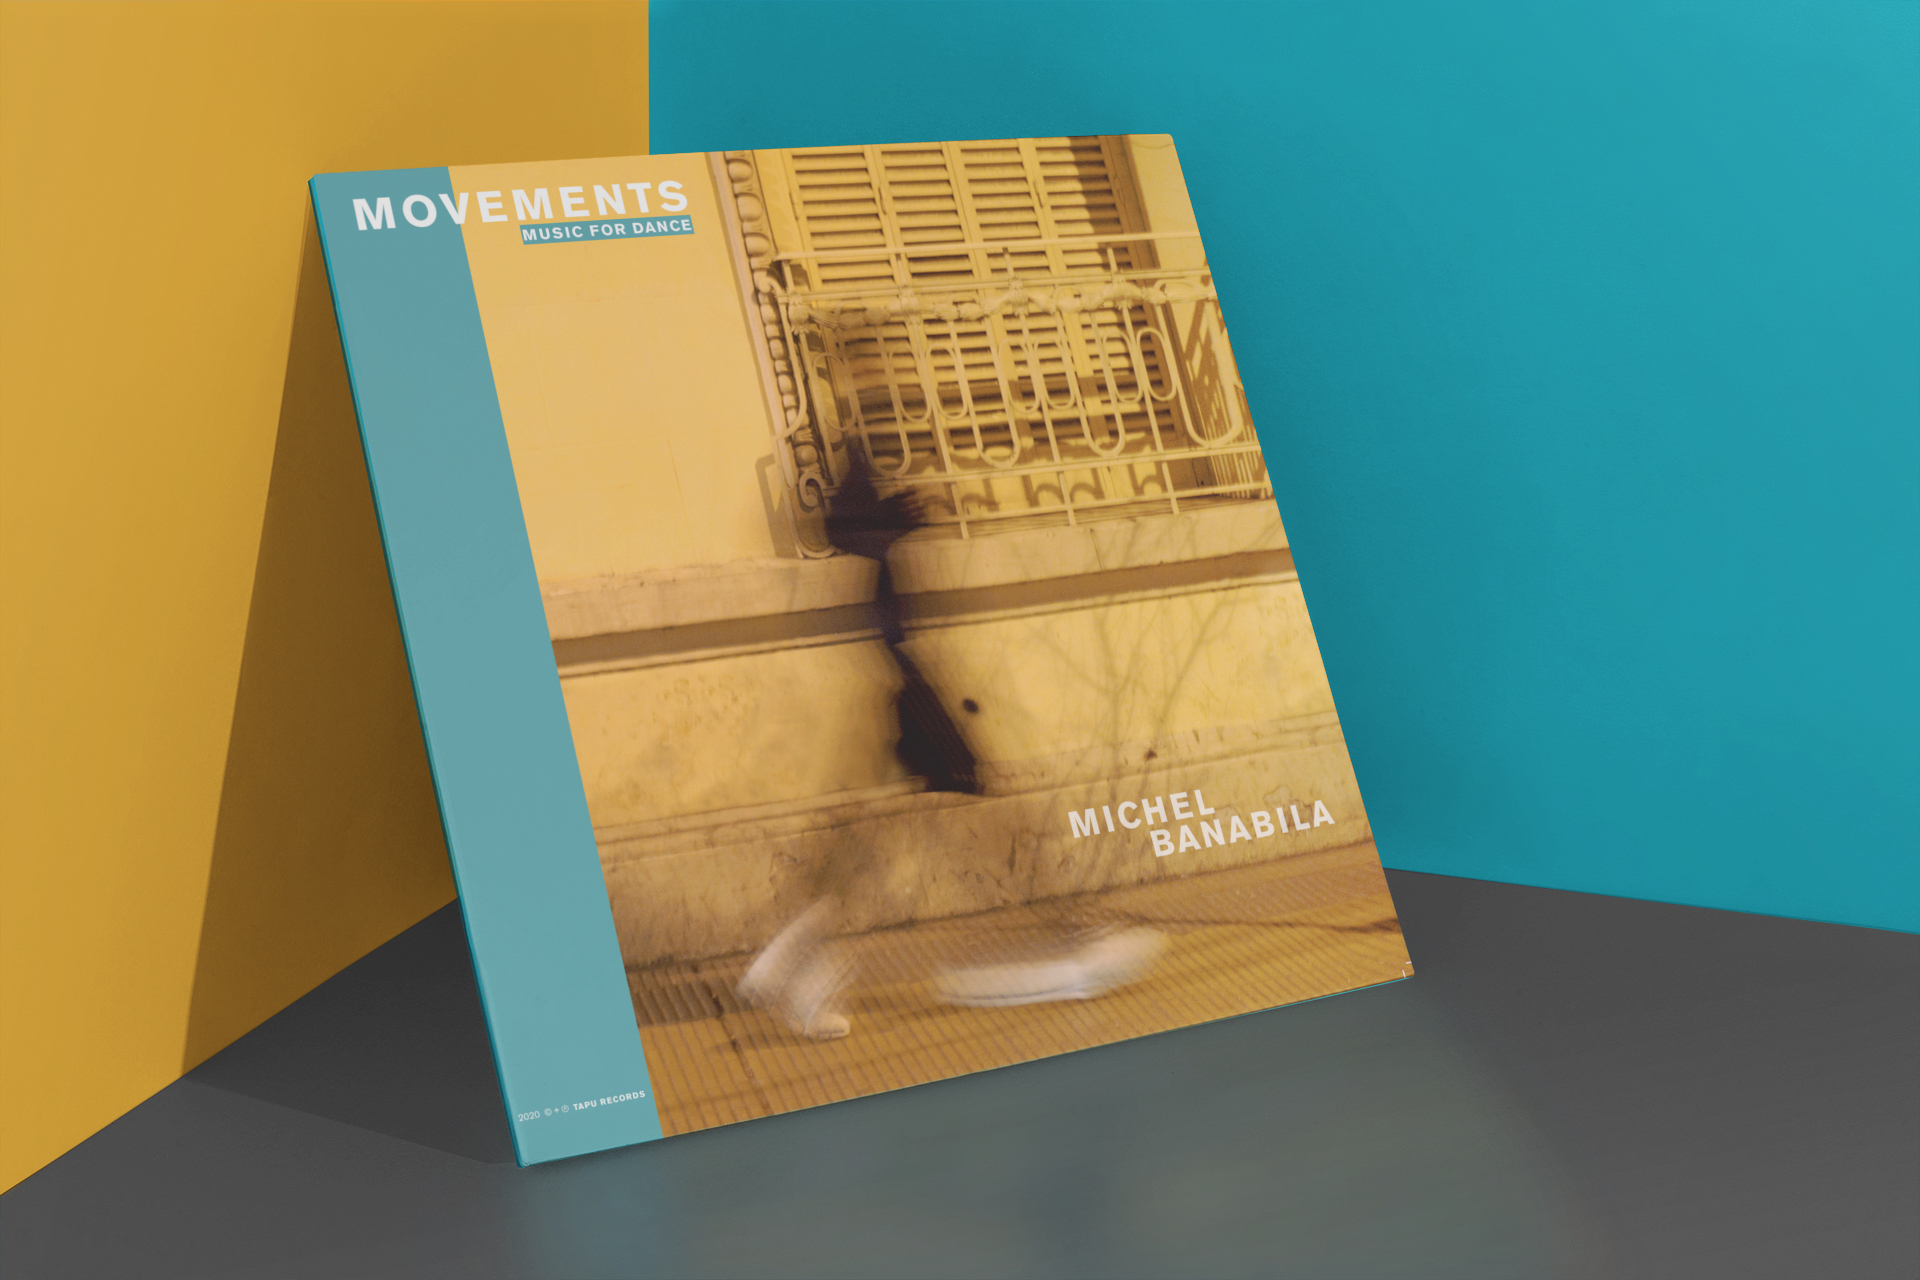 Michel Banabila - Movements, music for dance